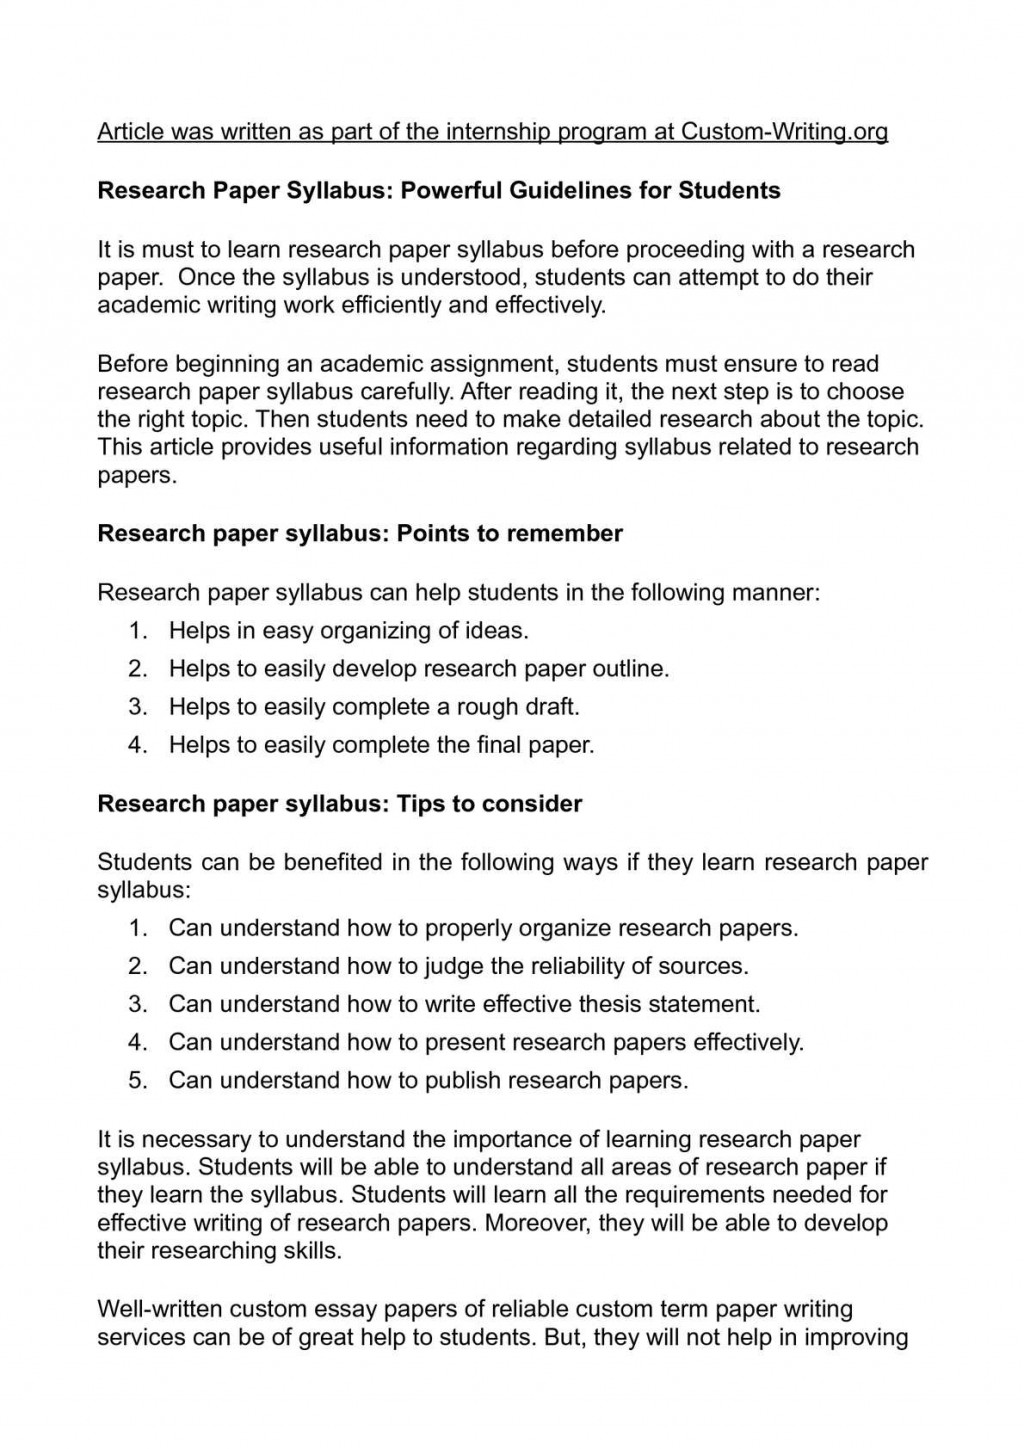 004 Provides Students With Custom Written Papers Research Paper Phenomenal Term Large